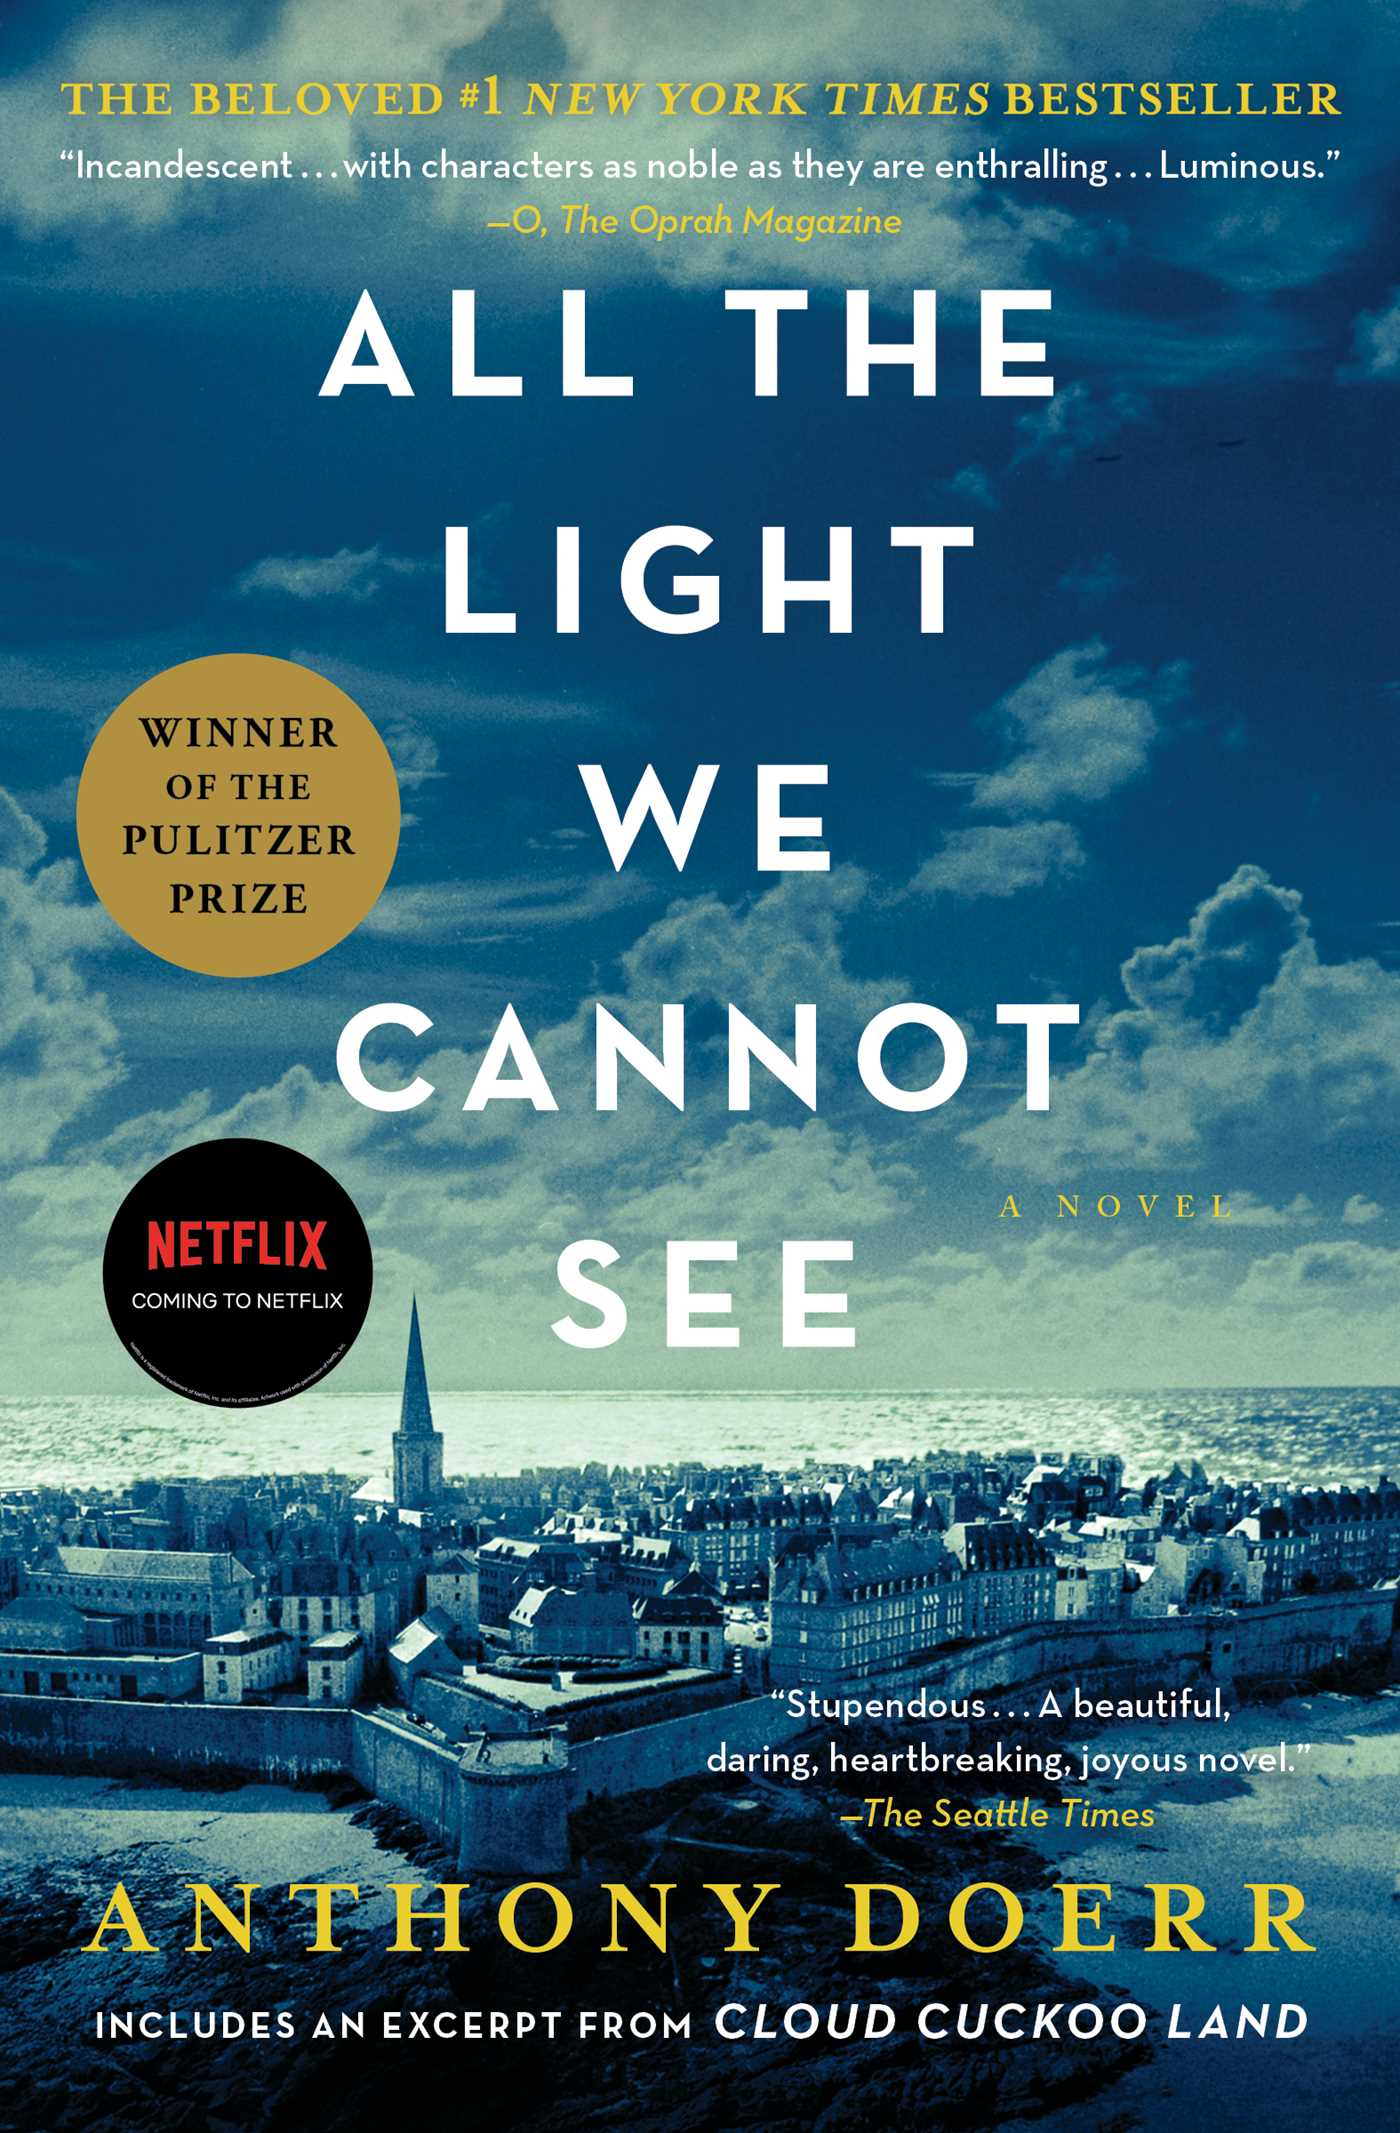 All the light we cannot see 9781476746609 hr